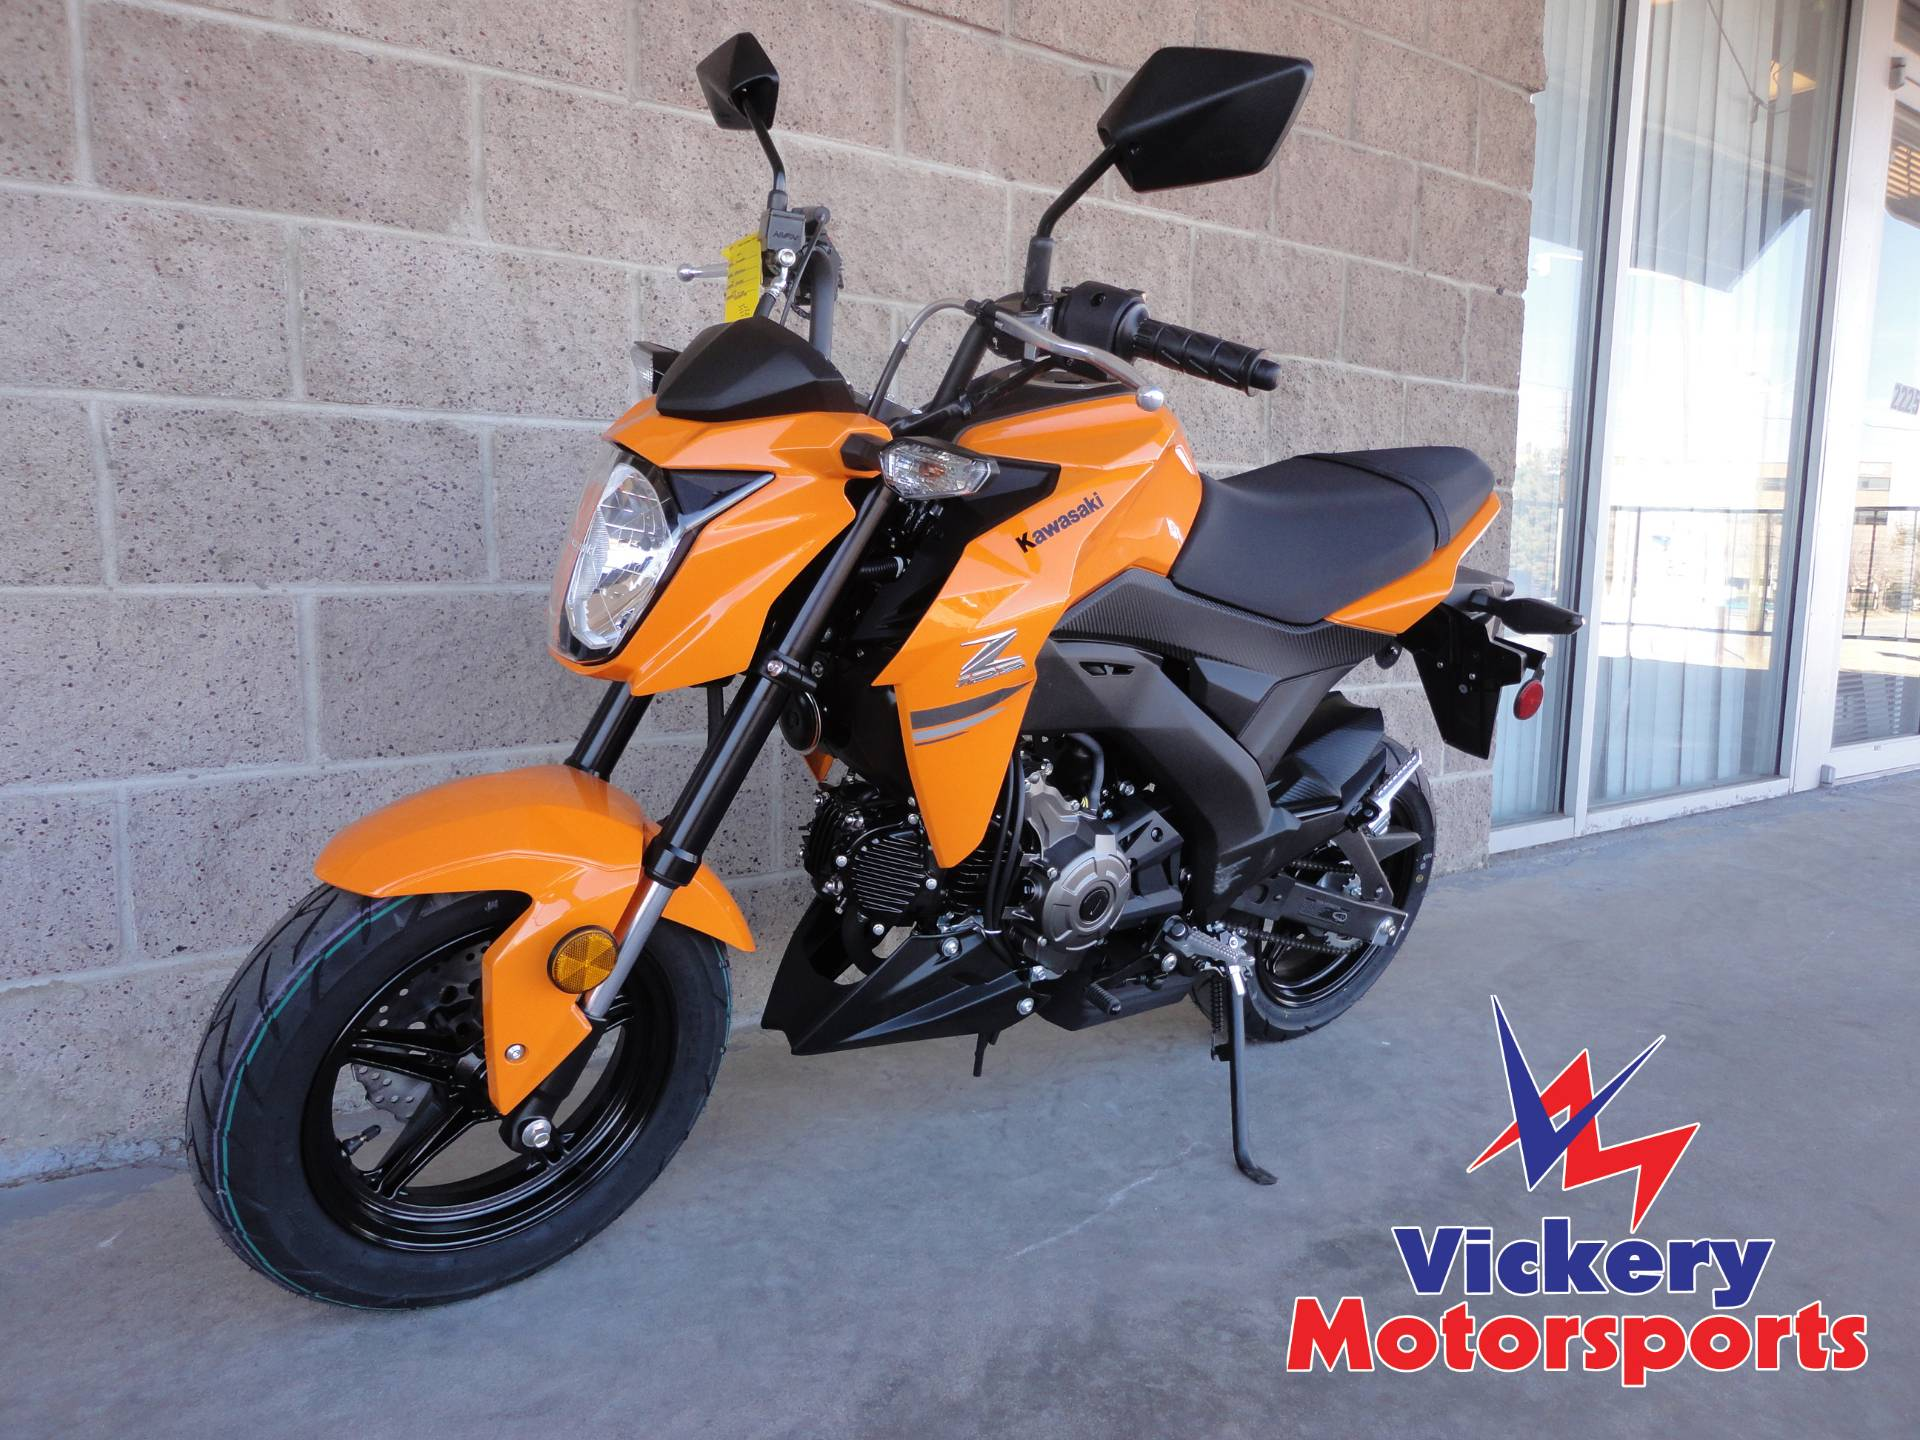 2019 Kawasaki Z125 Pro in Denver, Colorado - Photo 1